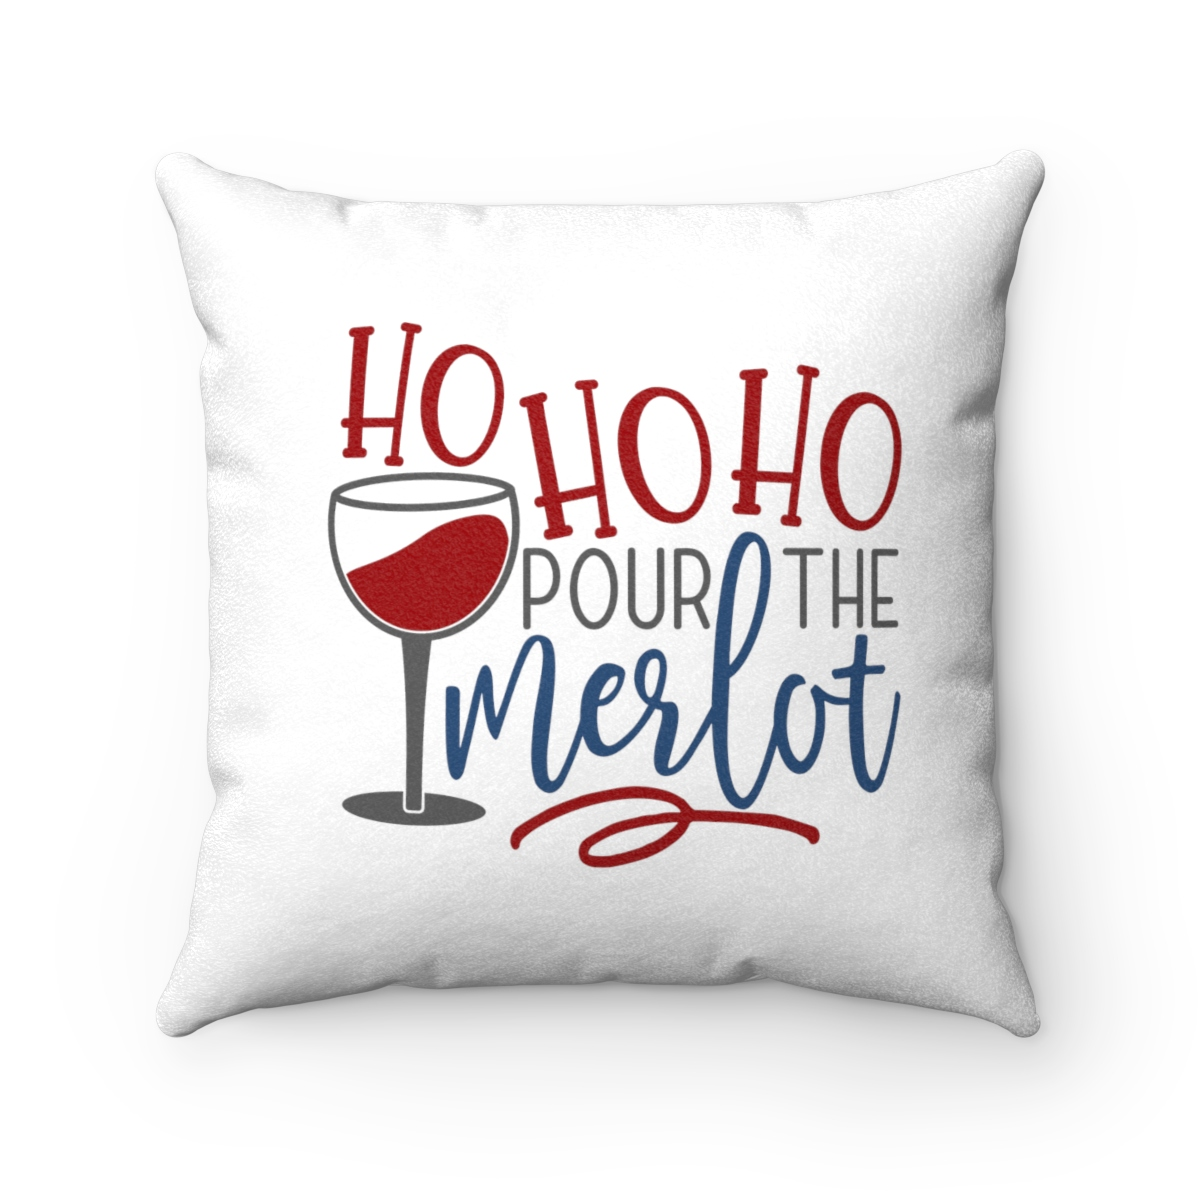 Picture of: Double Sided Christmas Pillow Case Don T Get Your Tinsel In A Tangle Ho Ho Ho Pass The Merlot Jennifer Dawn